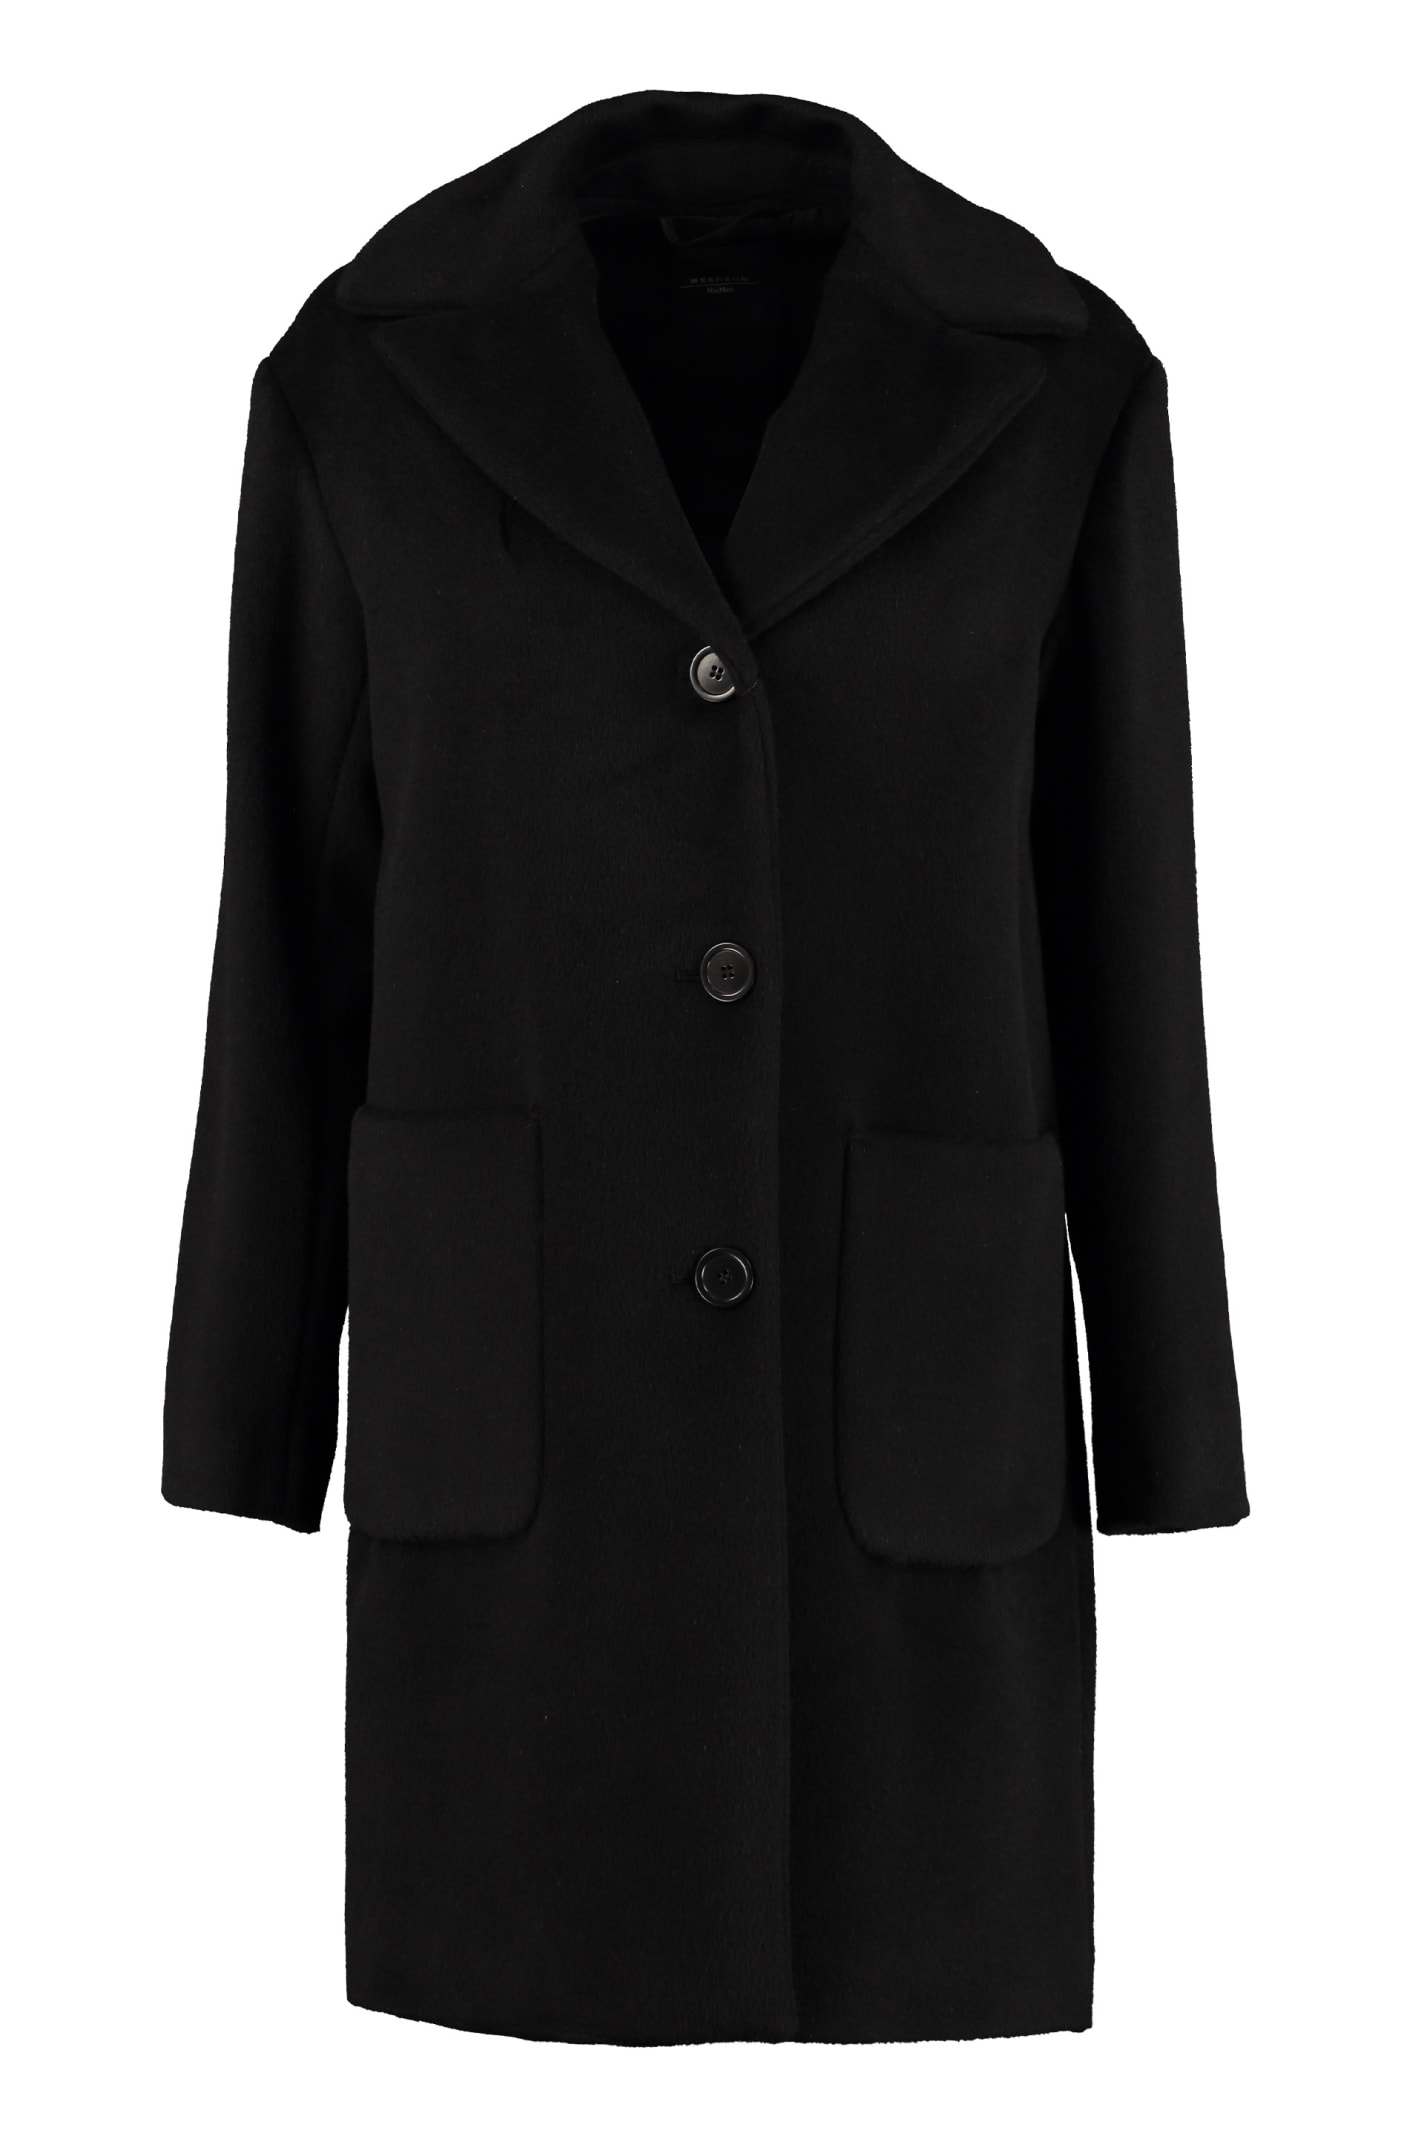 Weekend Max Mara Oliveto Wool And Alpaca Coat